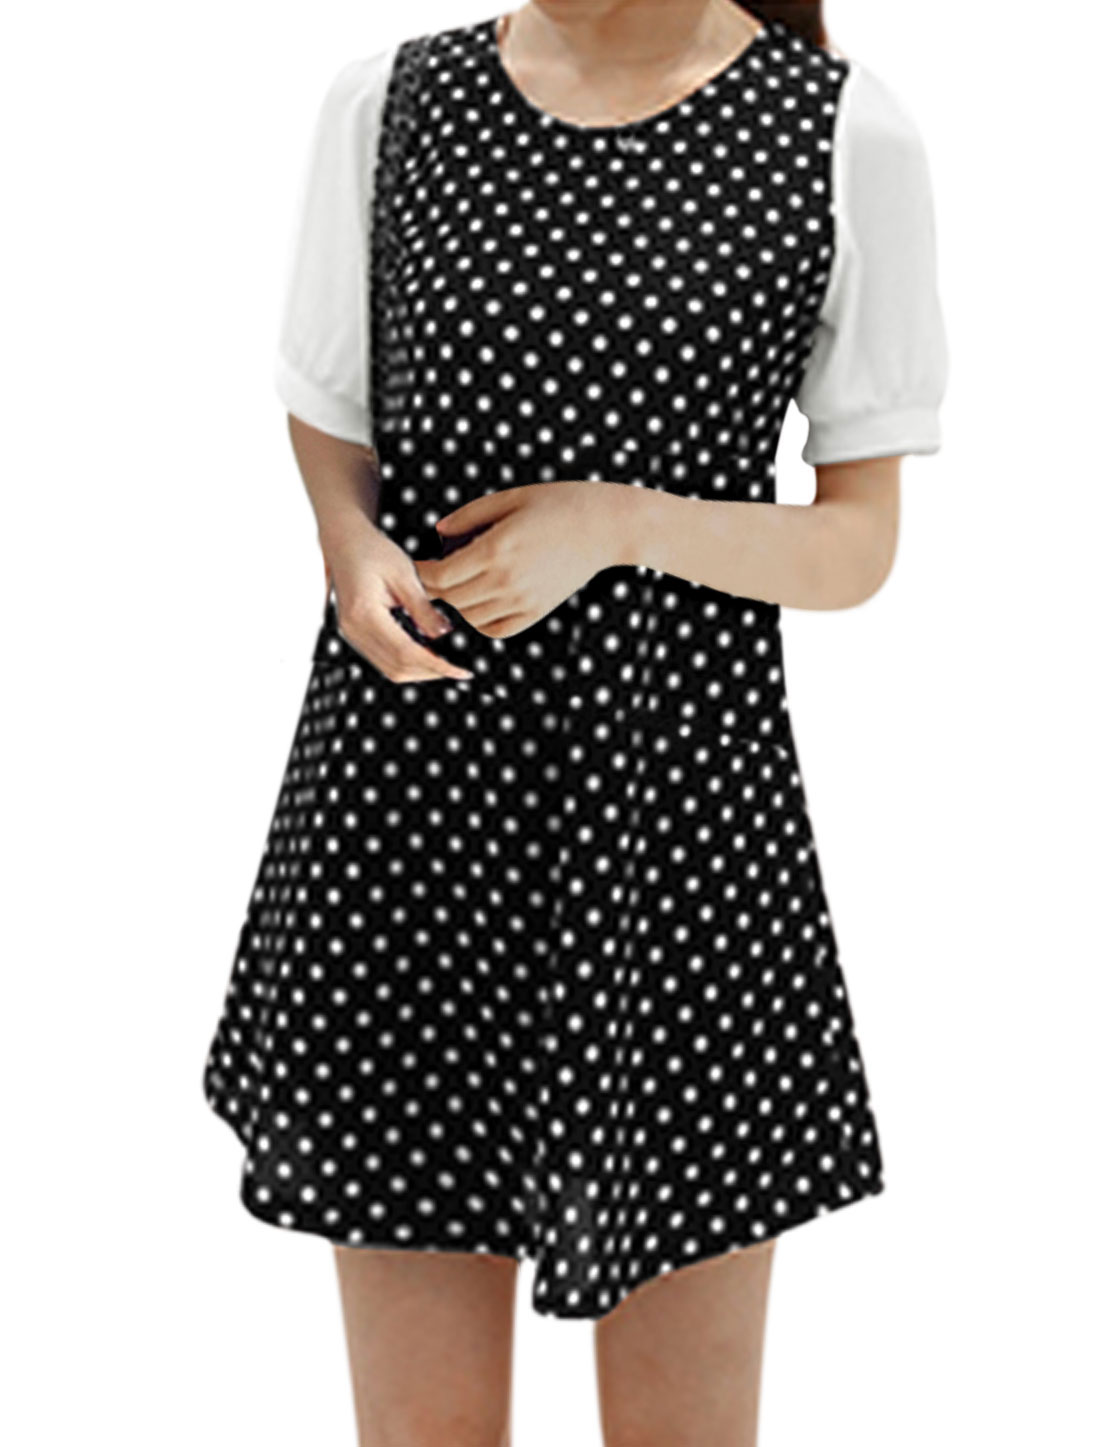 Lady Short Chiffon Contrast Sleeve All-over Dots Prints A-Line Dress Black M